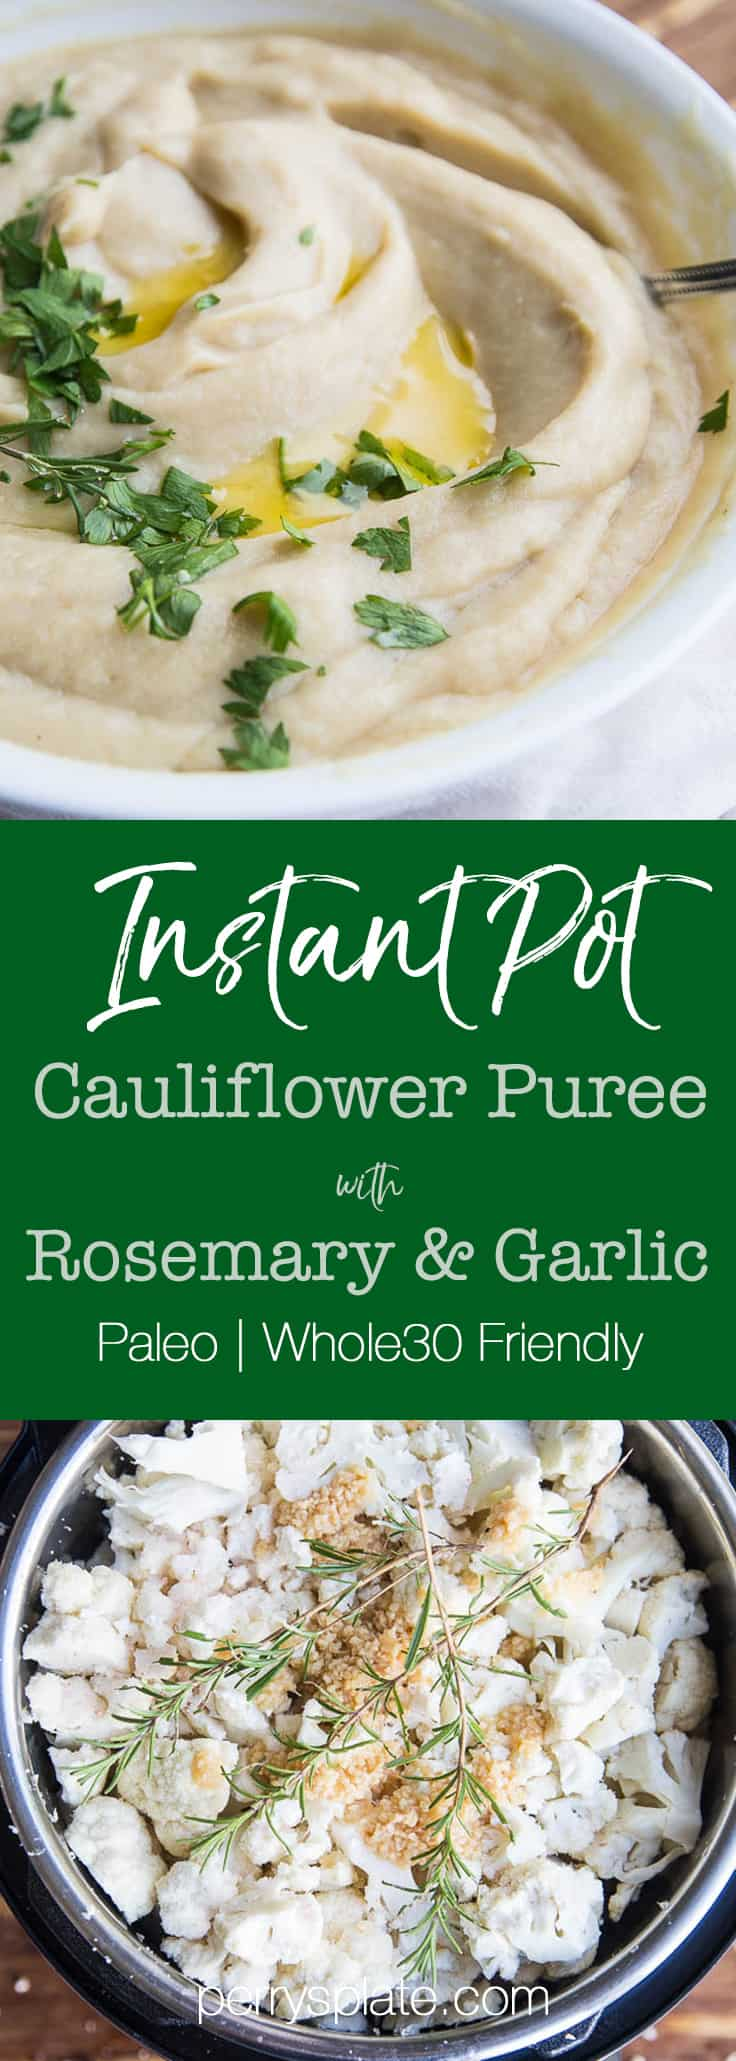 Instant Pot Rosemary Garlic Cauliflower Puree | Instant Pot recipes | paleo recipes | Whole30 recipes | gluten-free recipes | low carb recipes | keto recipes | healthy Thanksgiving recipes | perrysplate.com